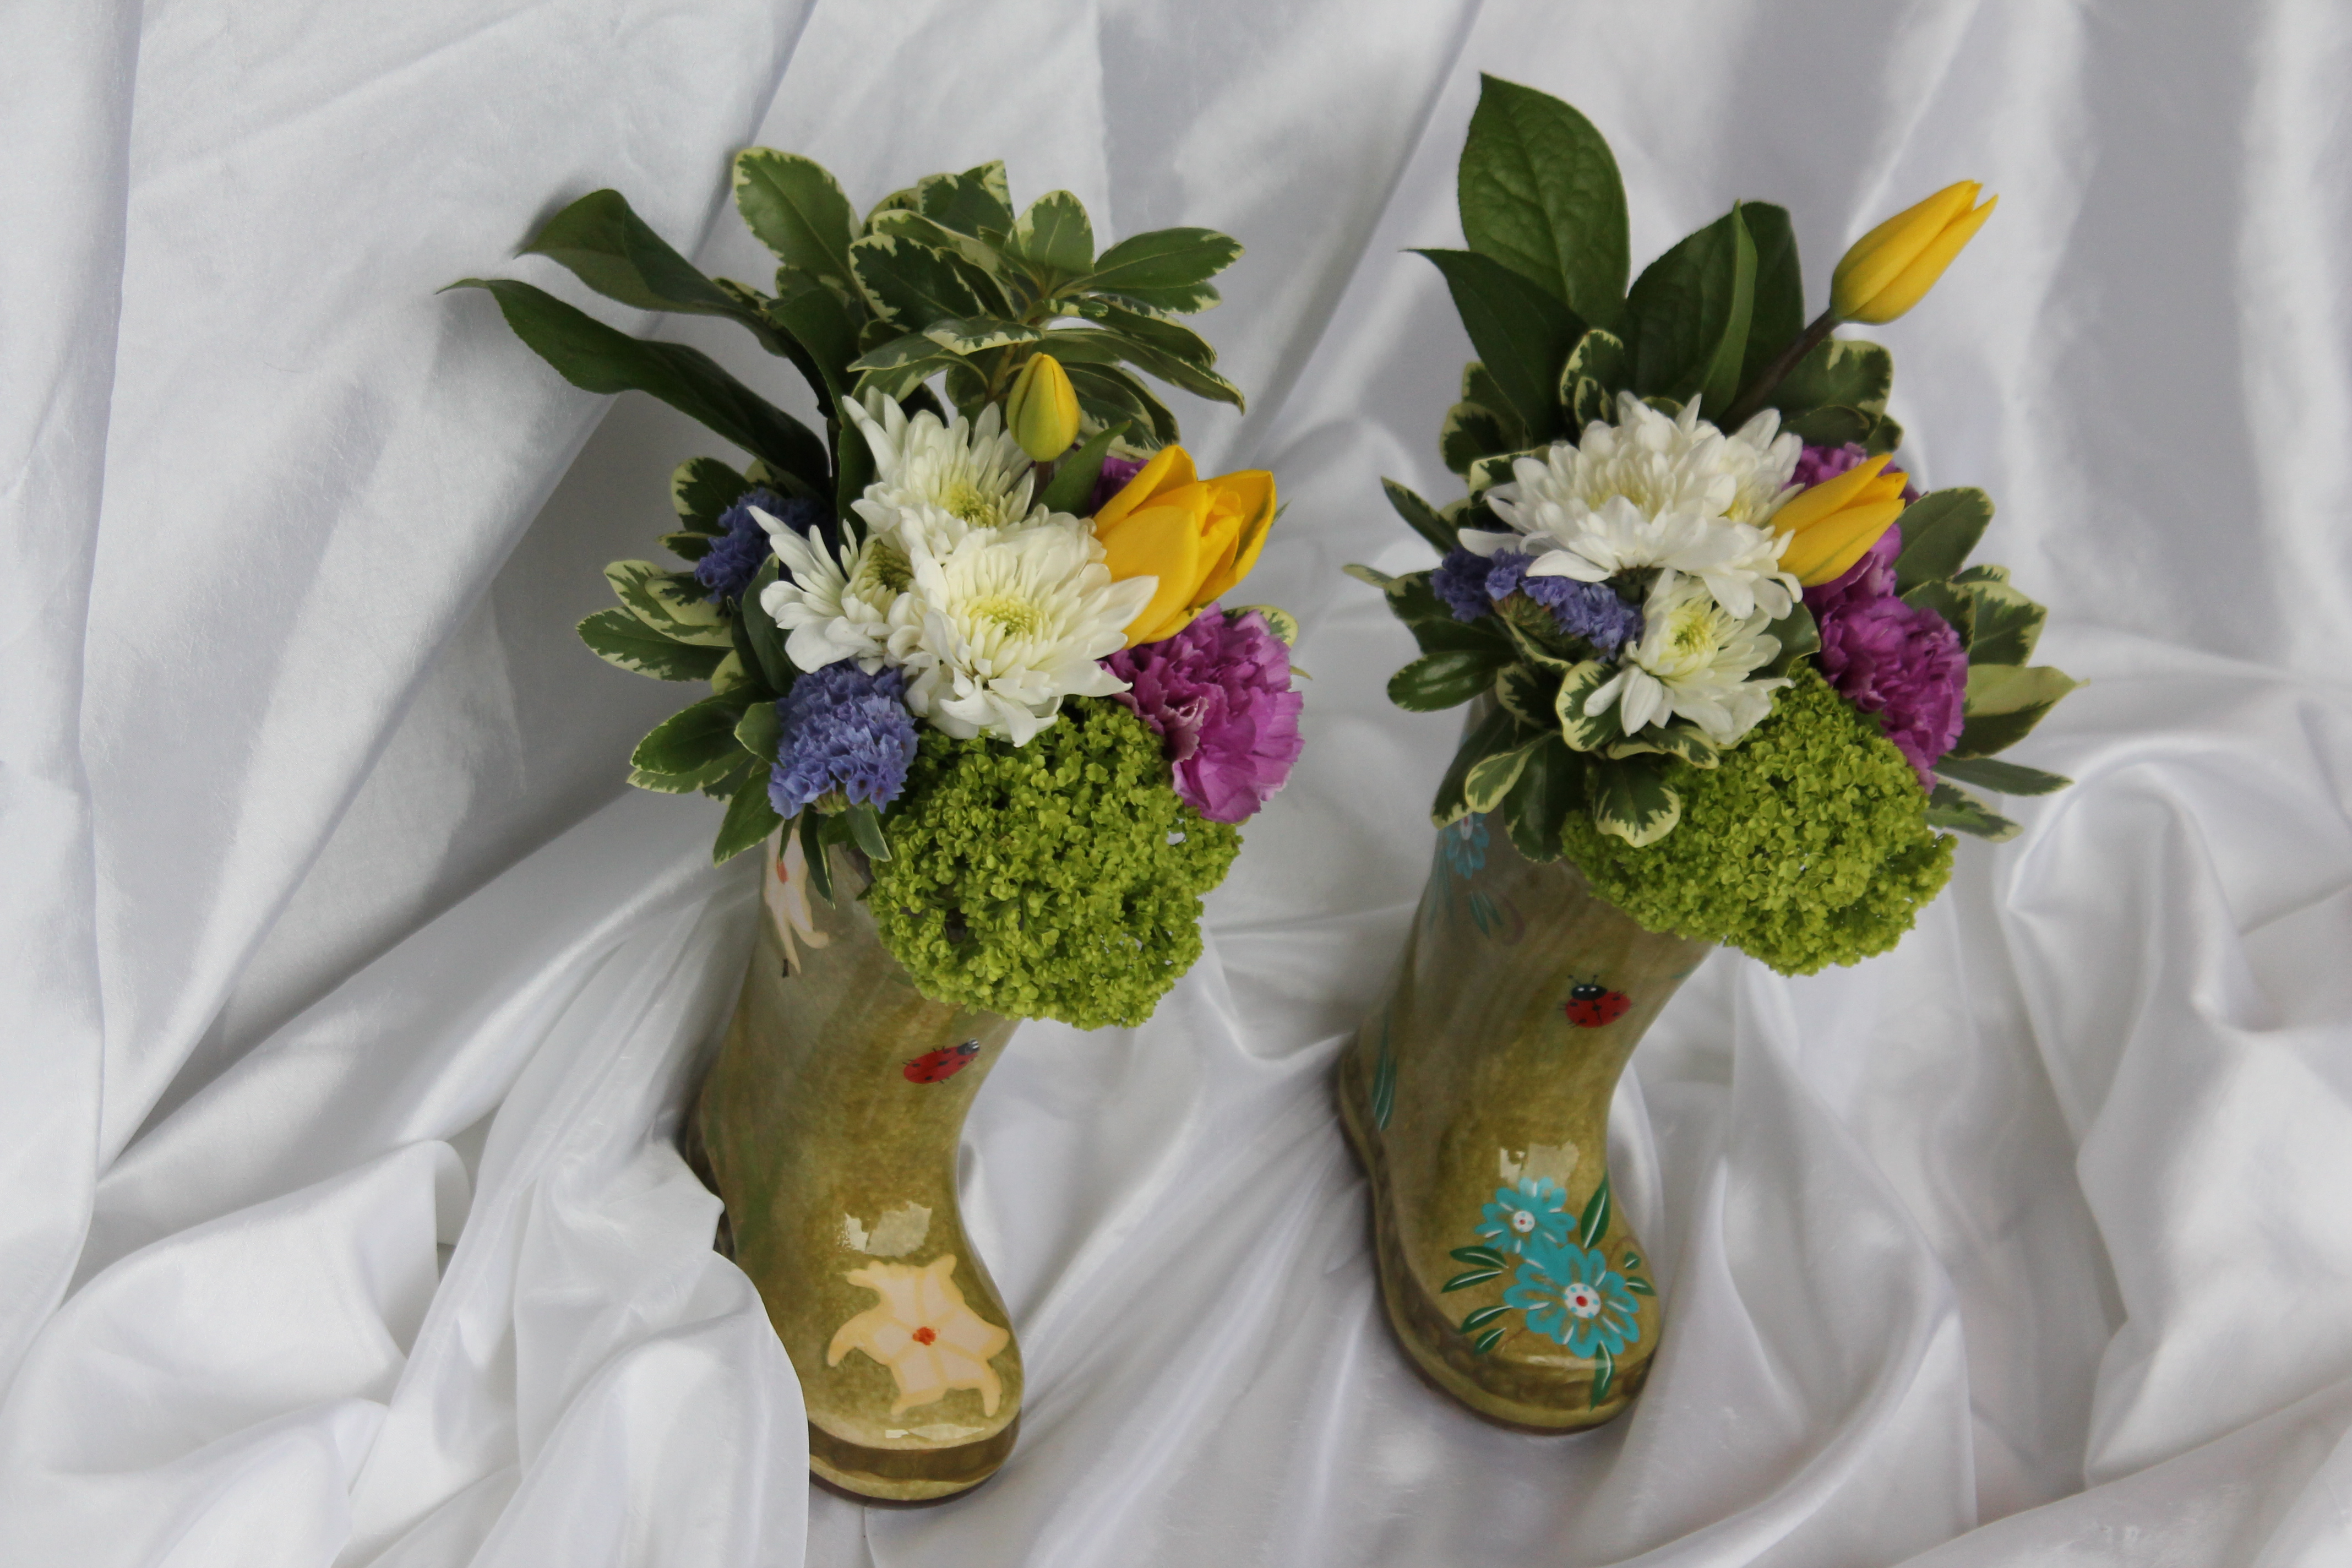 New Baby Flower Arrangements | Elegant Bouquets